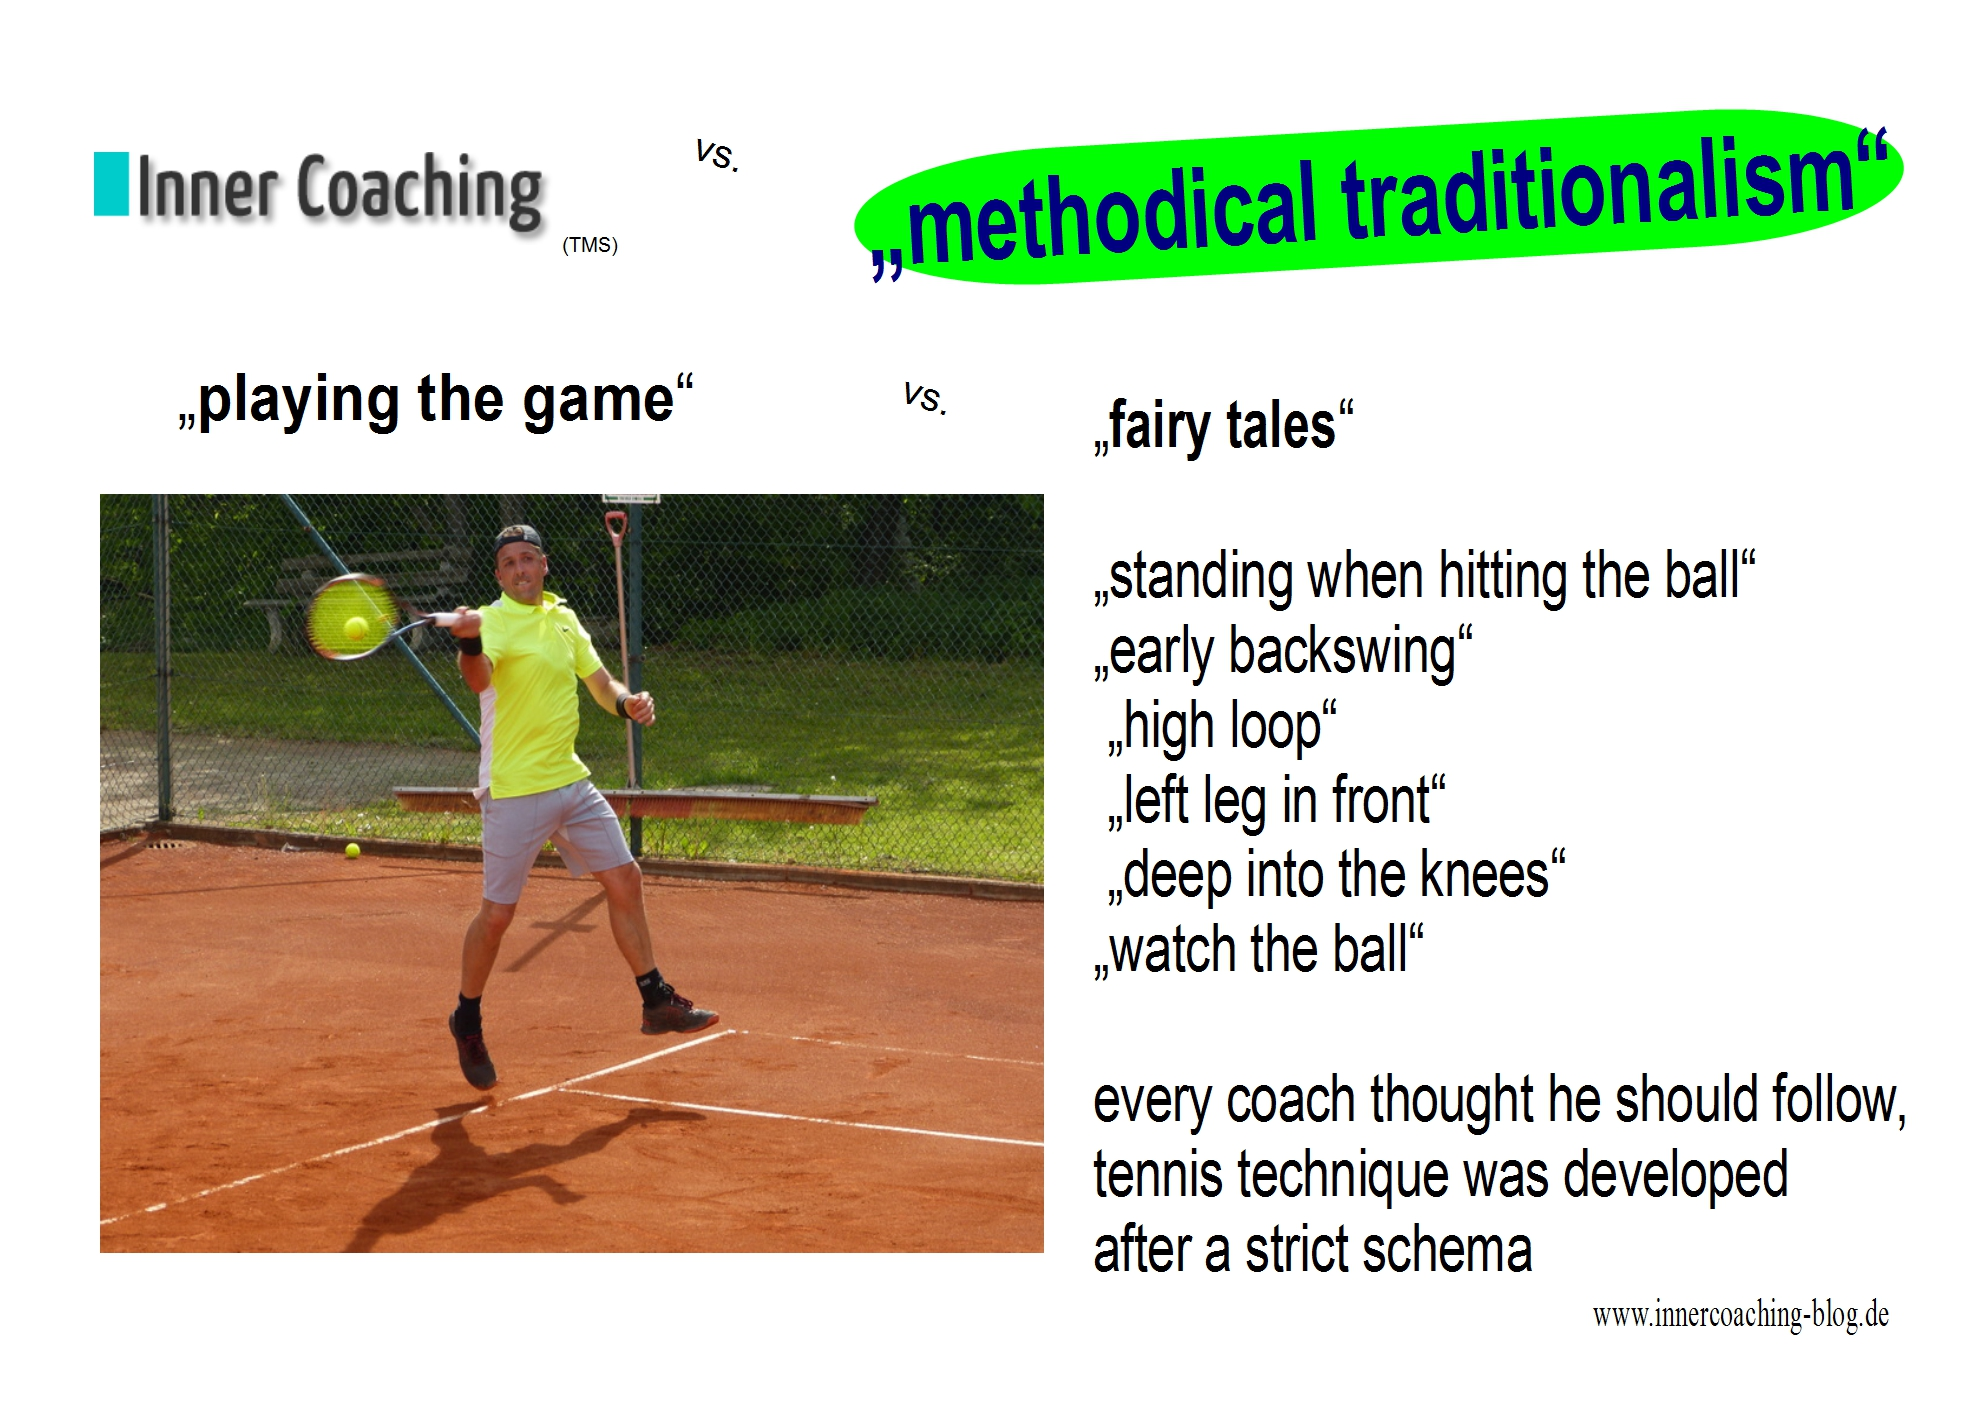 INNER COACHING (TMS) or Methodical traditionalism